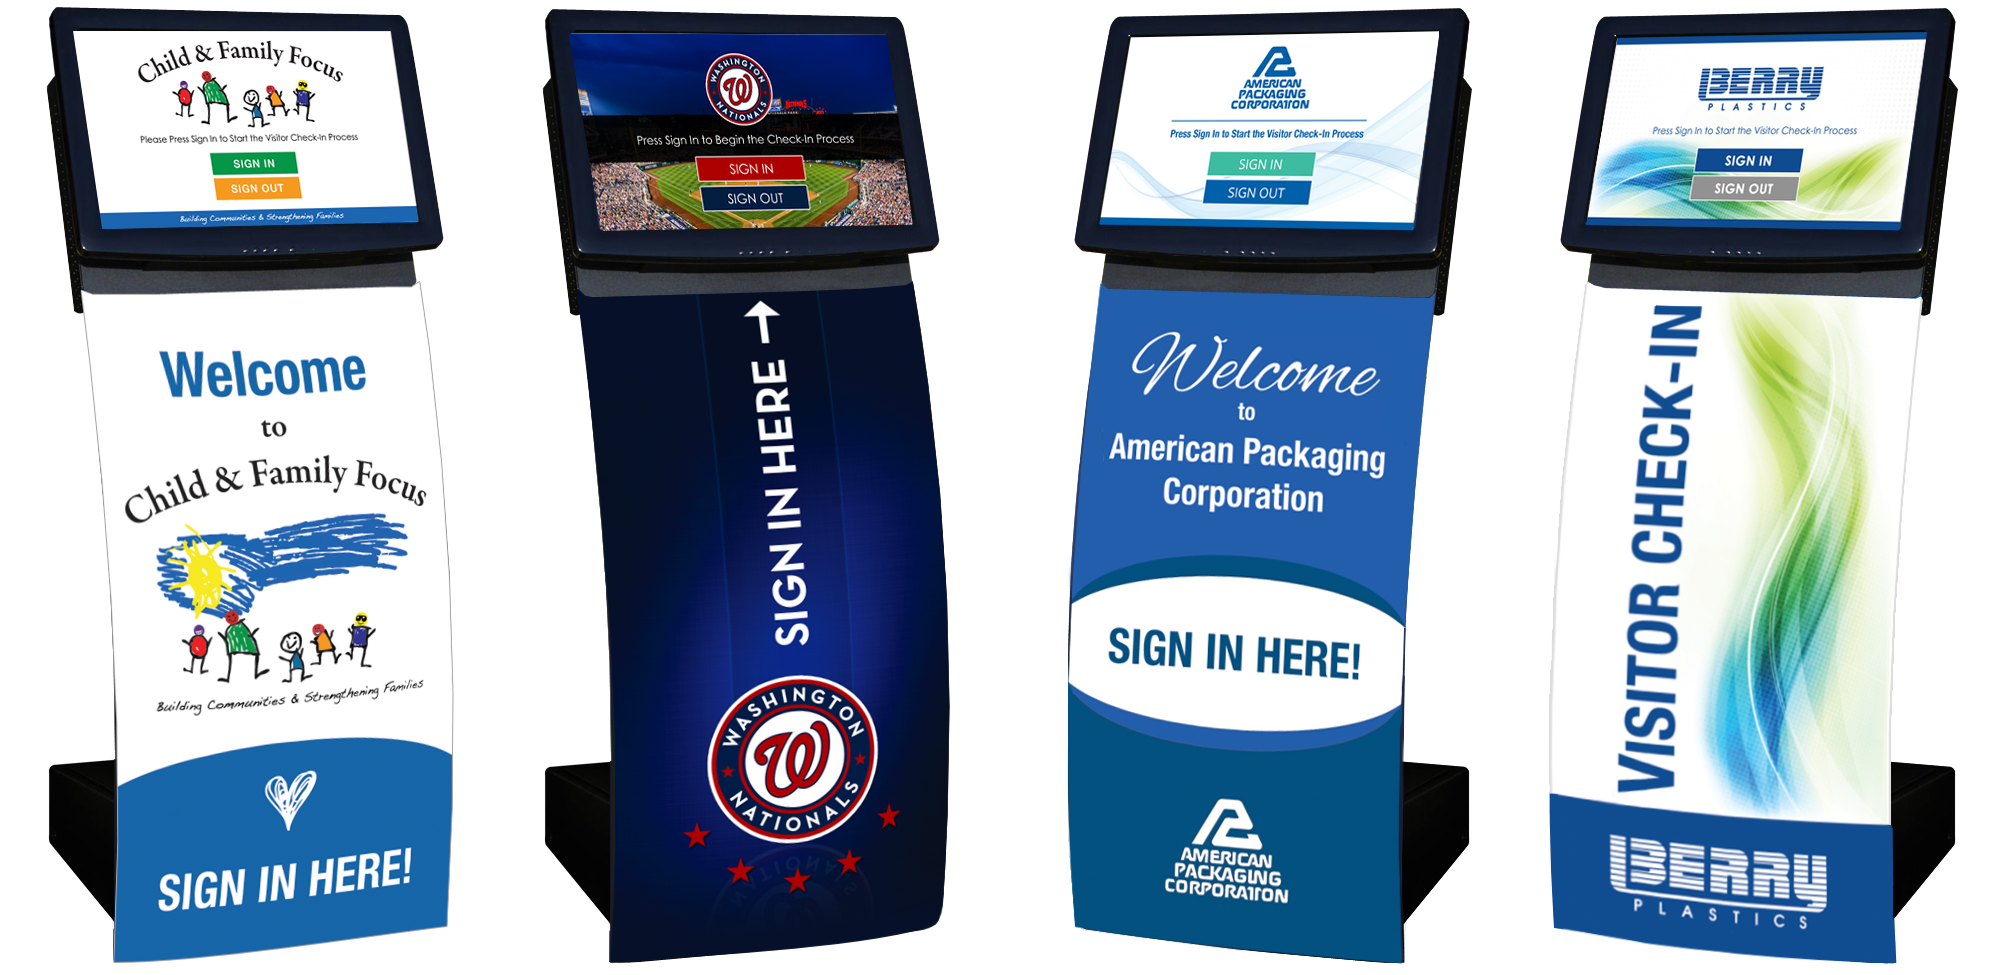 Modern, curved visitor management self check-in kiosks